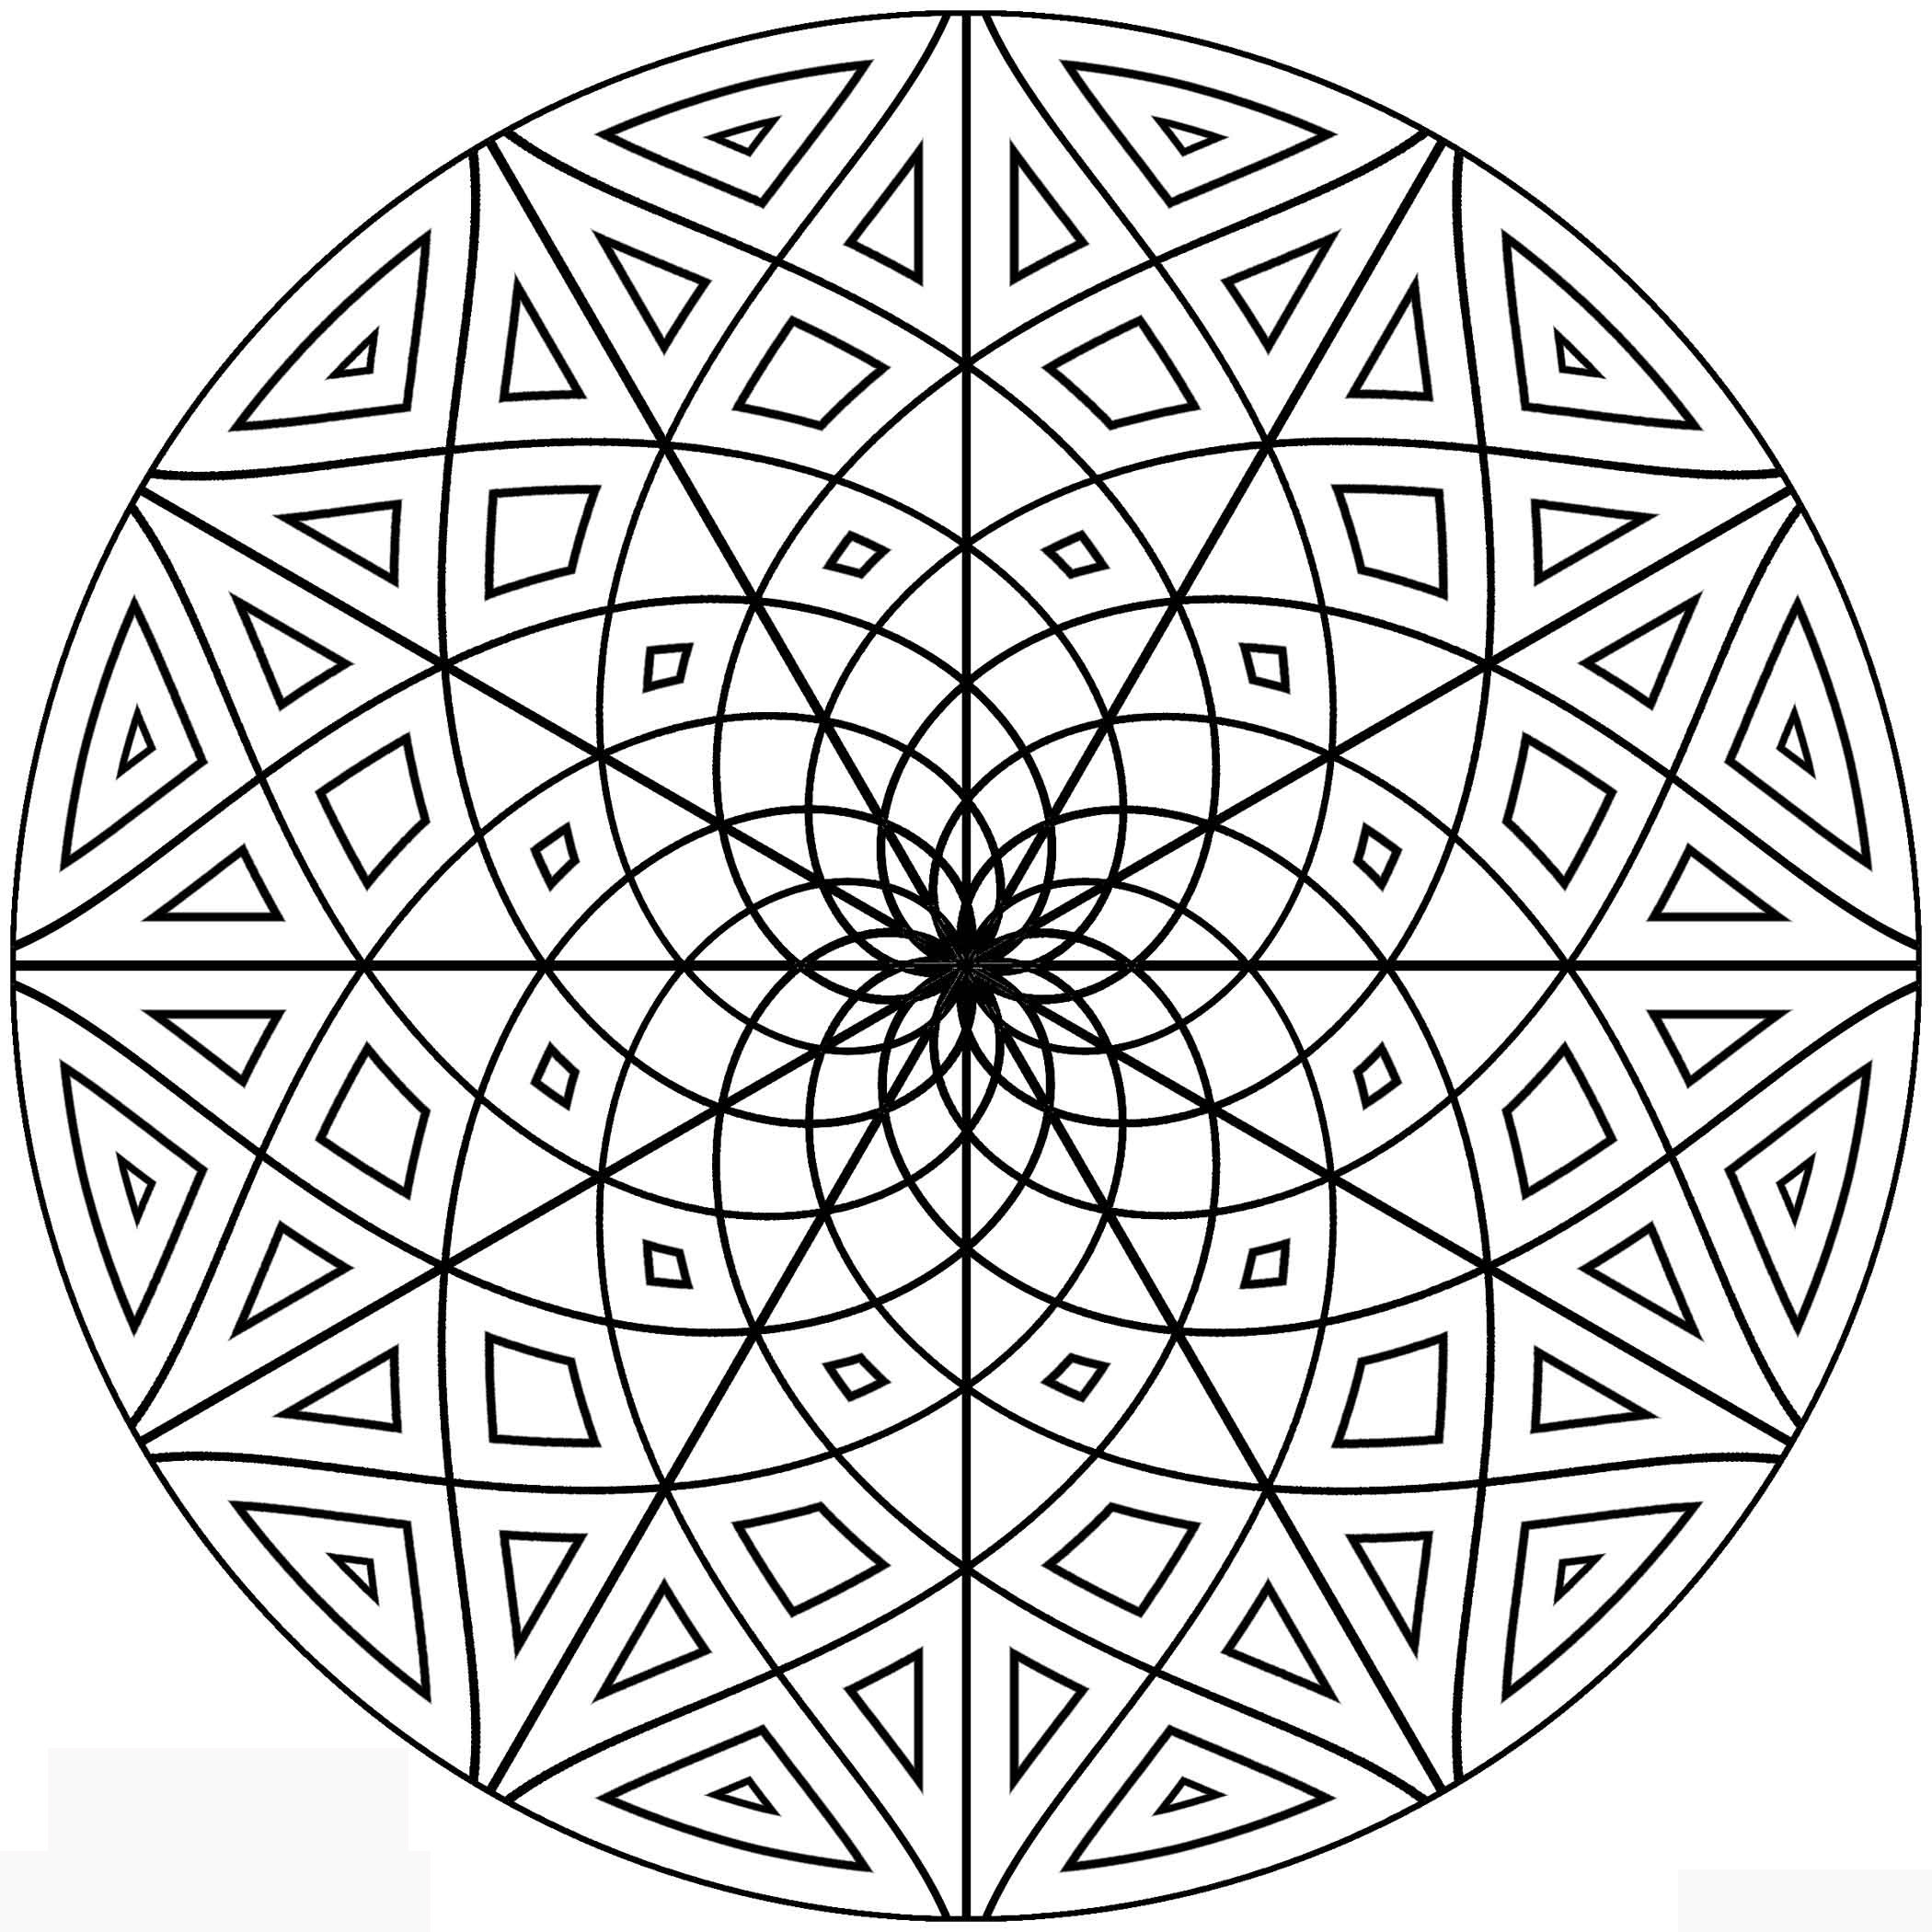 Best ideas about Free Coloring Sheets Printable . Save or Pin Free Printable Geometric Coloring Pages for Adults Now.